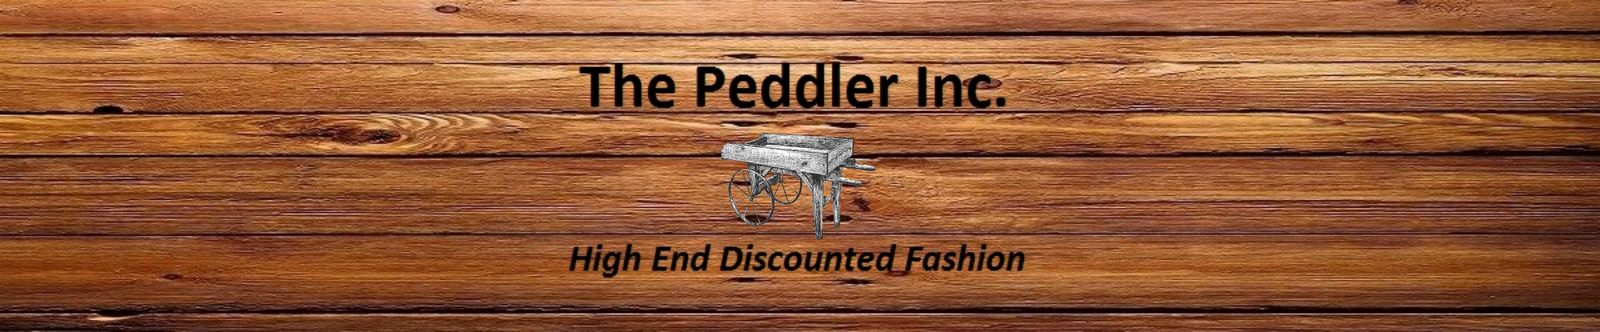 The Peddler Inc